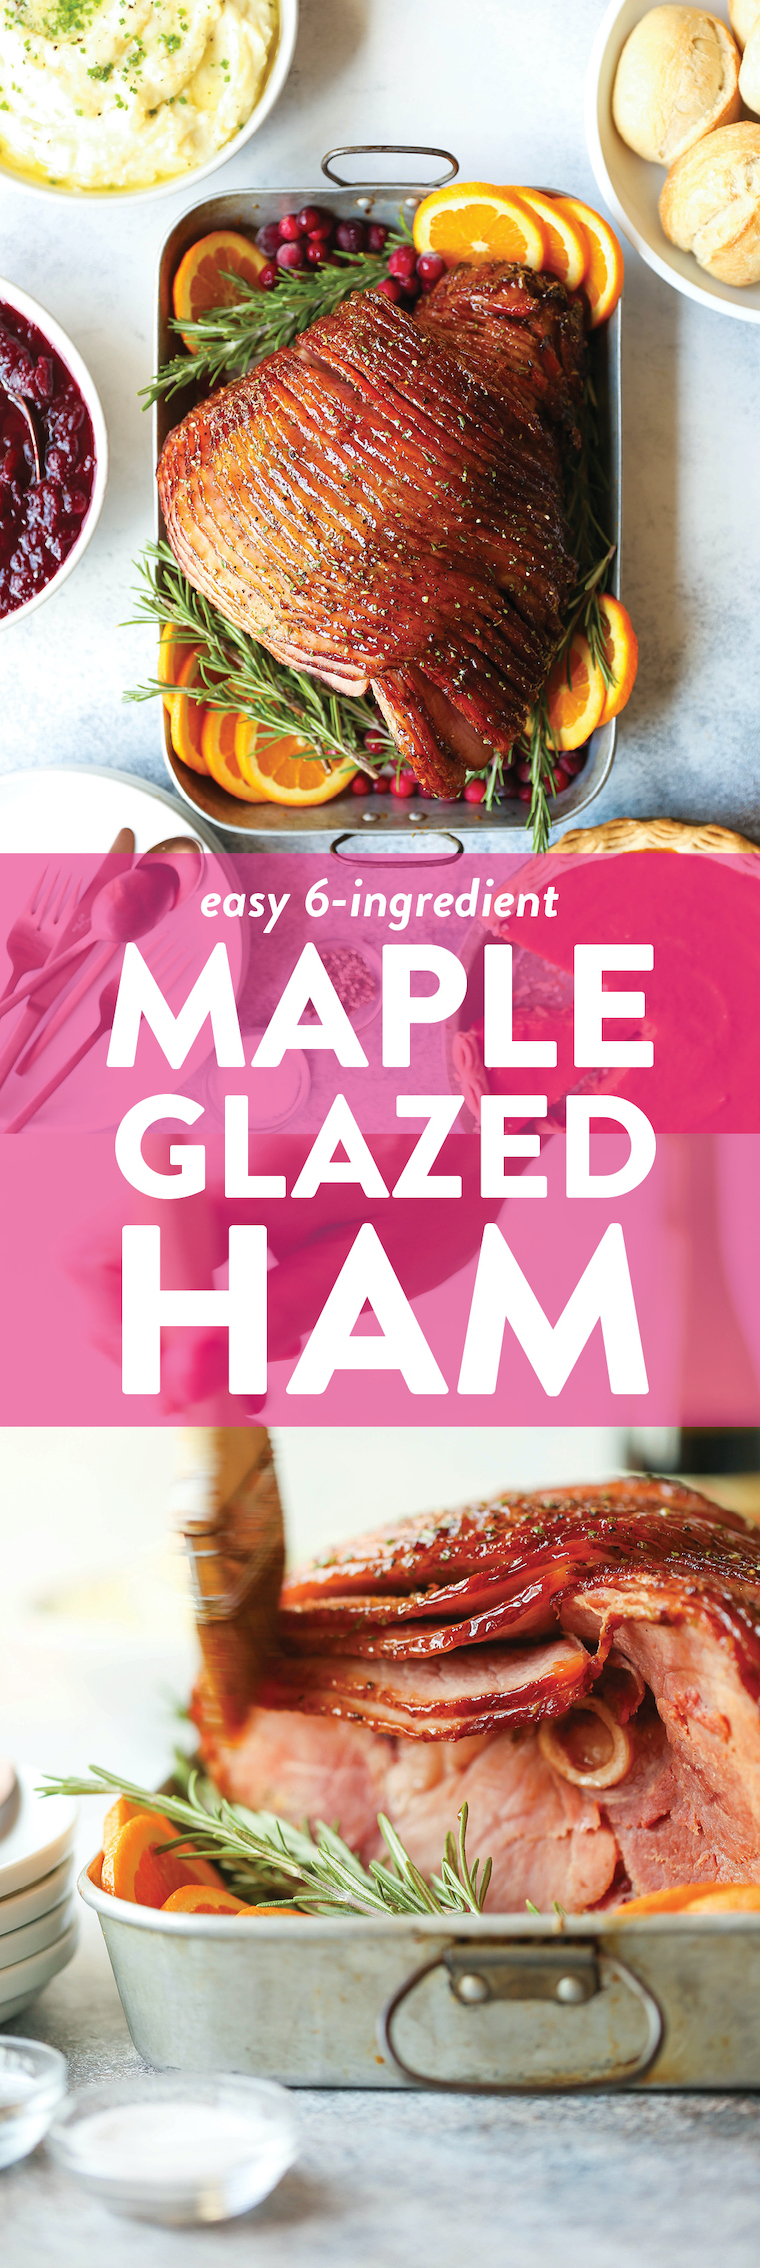 Maple Glazed Ham - The classic ham is made with the most incredible maple, brown sugar glaze. With just a few ingredients, this will be a hit with everyone!